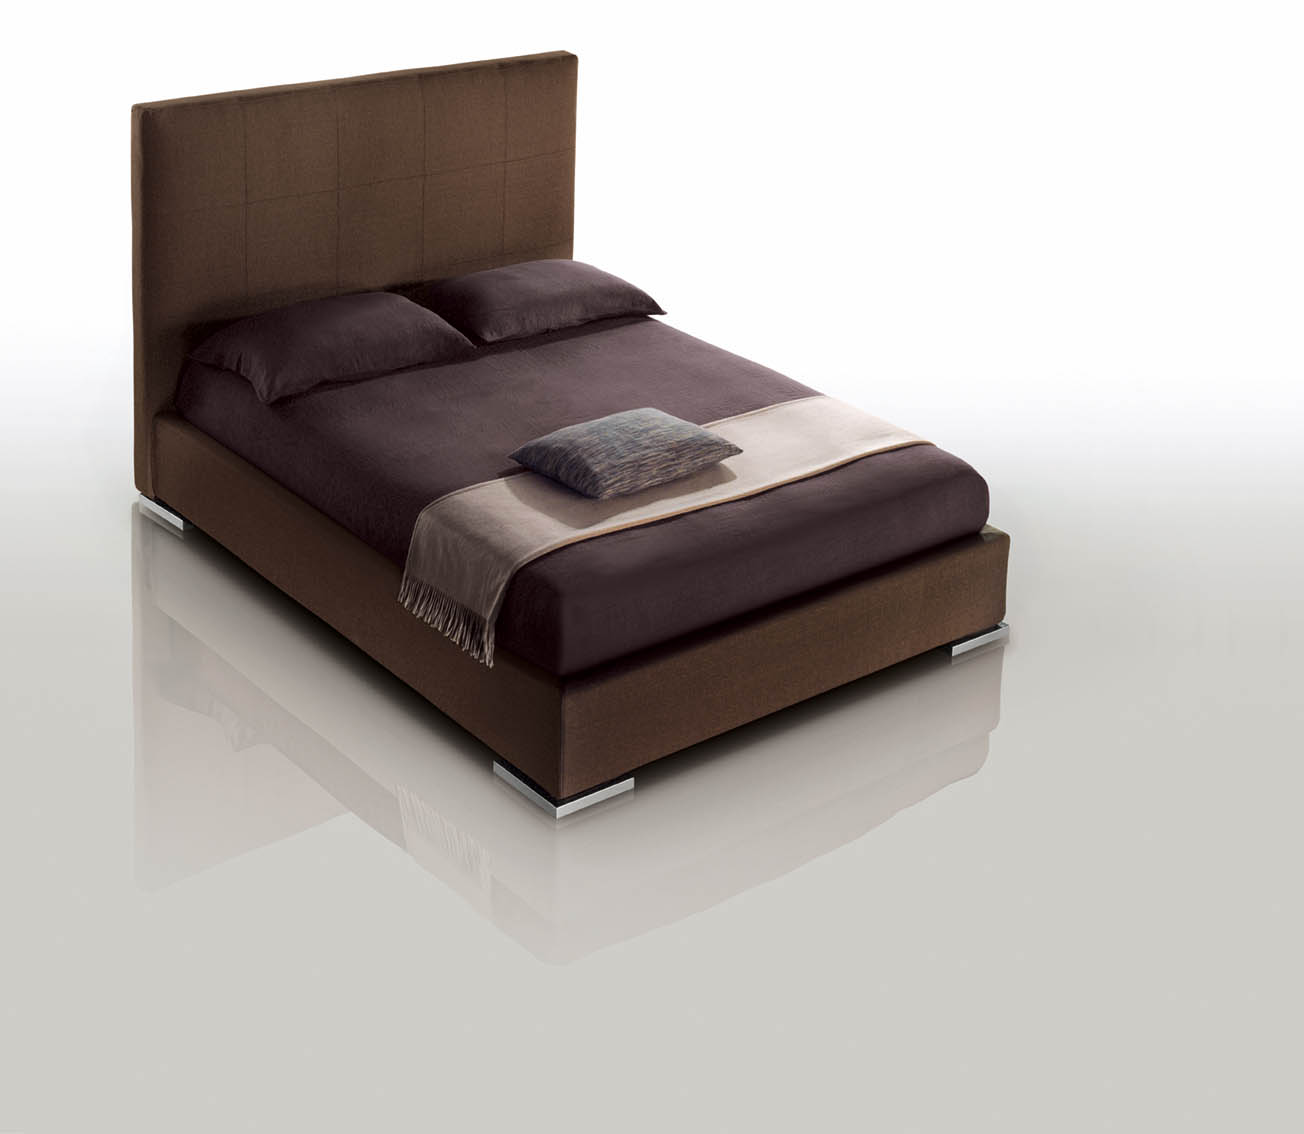 Foto letto Centaurea by Meta Design